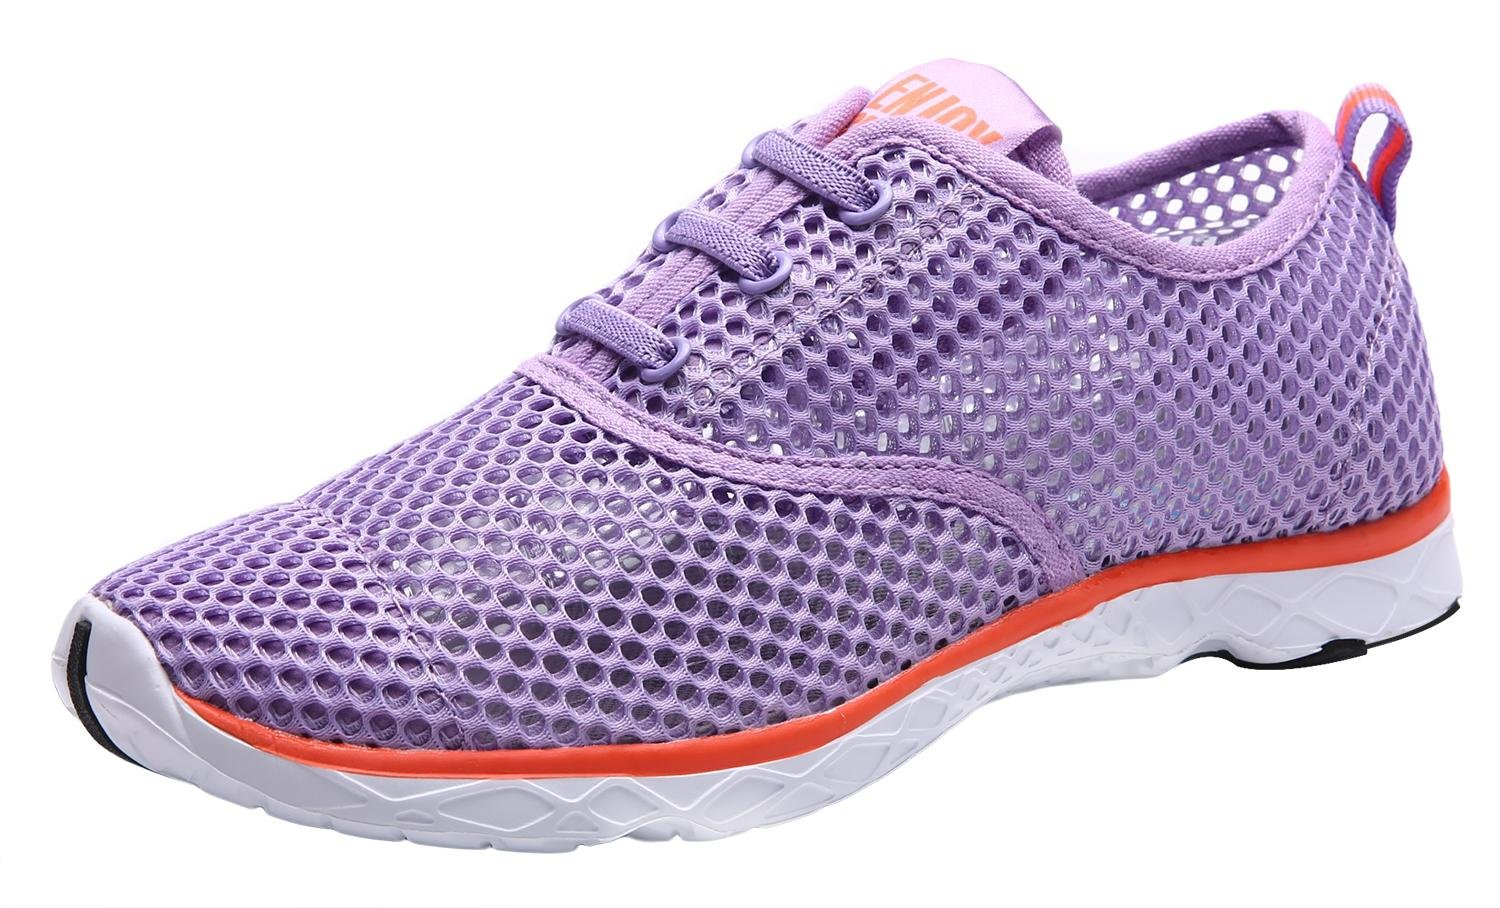 CAIHEE Women's Mesh Lightweight Quick-Dry Aqua Slip On Water Shoes B072HHYWT3 5.5 B(M) US|Light Purple